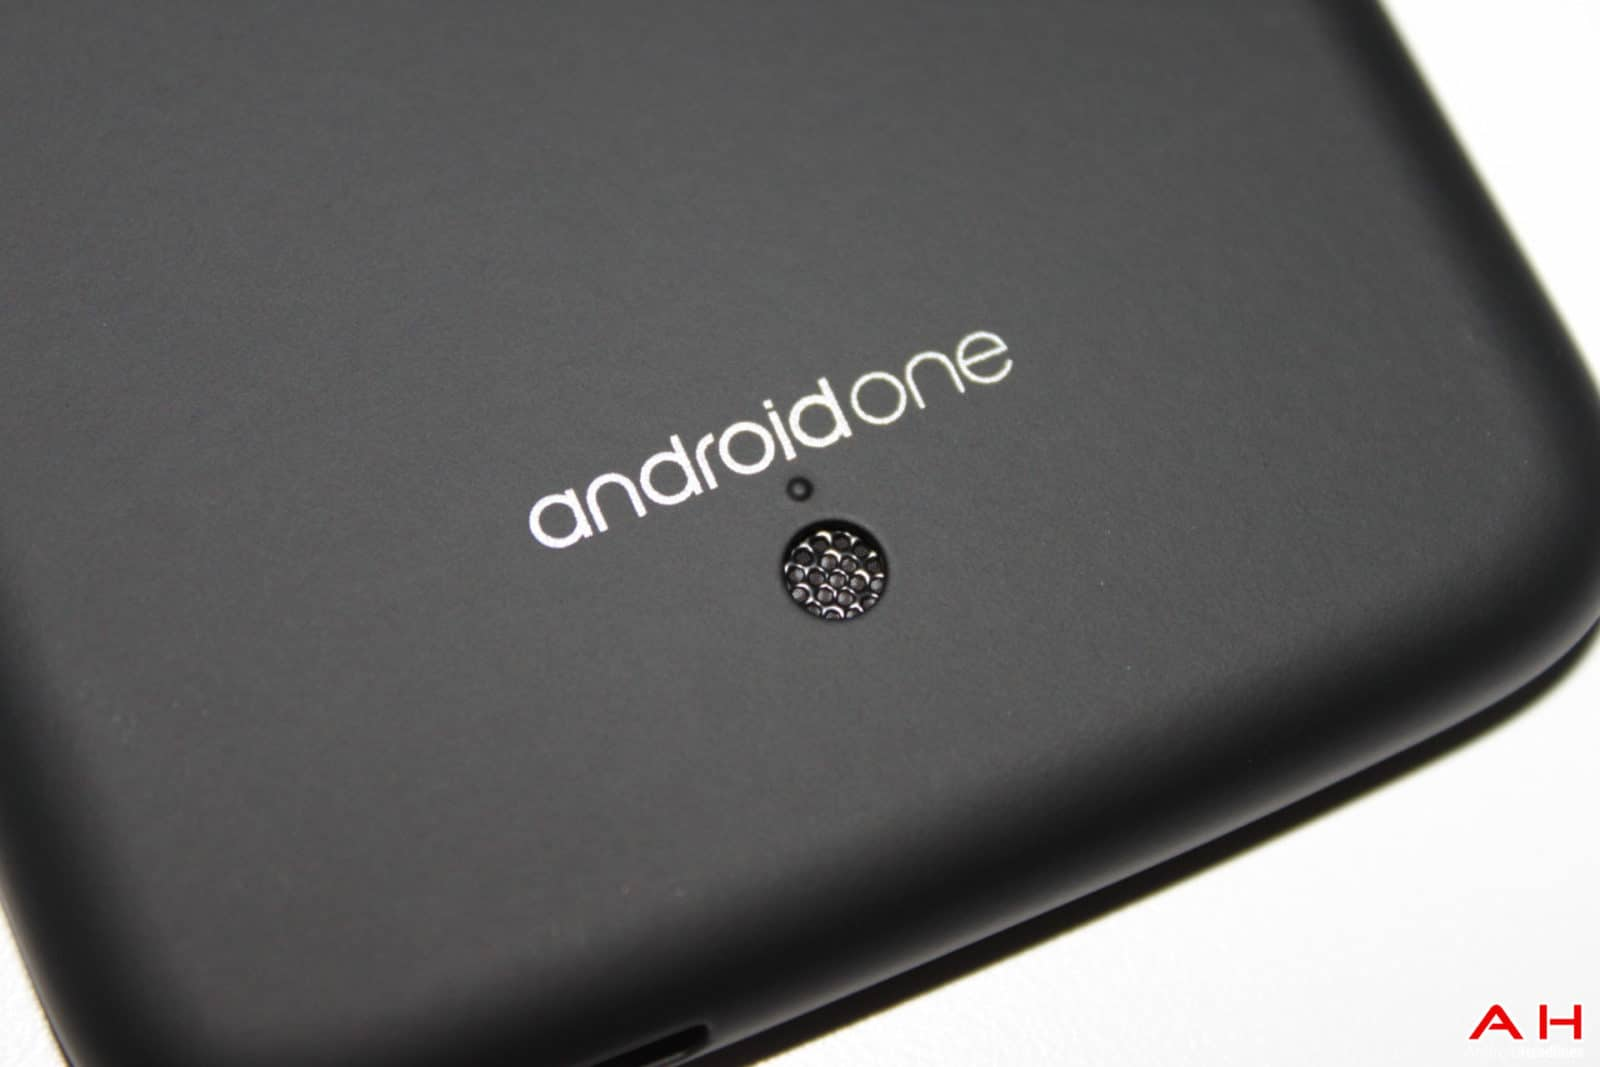 AH Micromax Canvas A1-9 android one logo